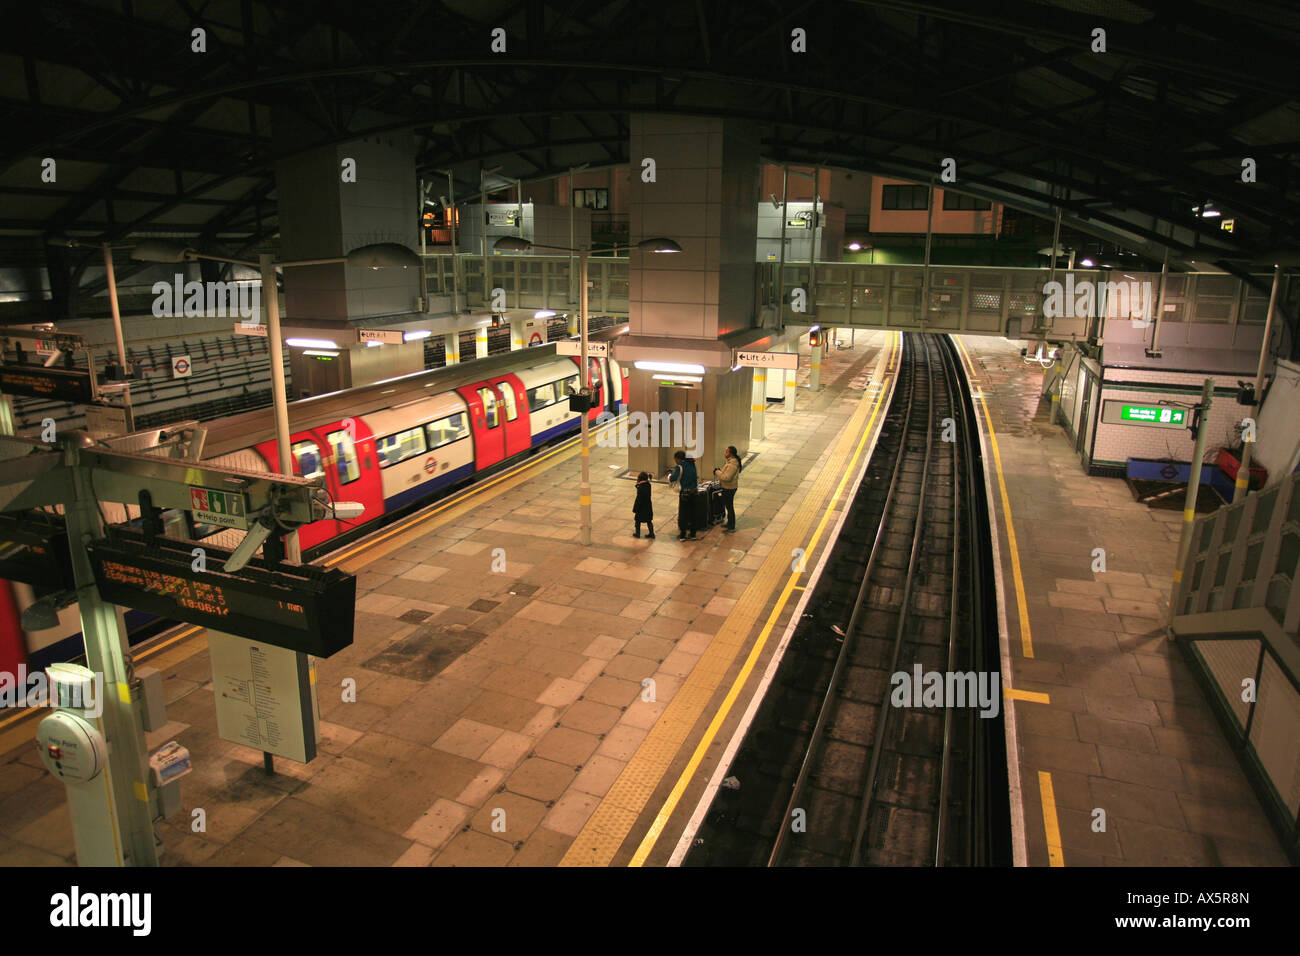 Morden underground station, southern terminus of the Northern Line, London, England, UK, Europe Stock Photo